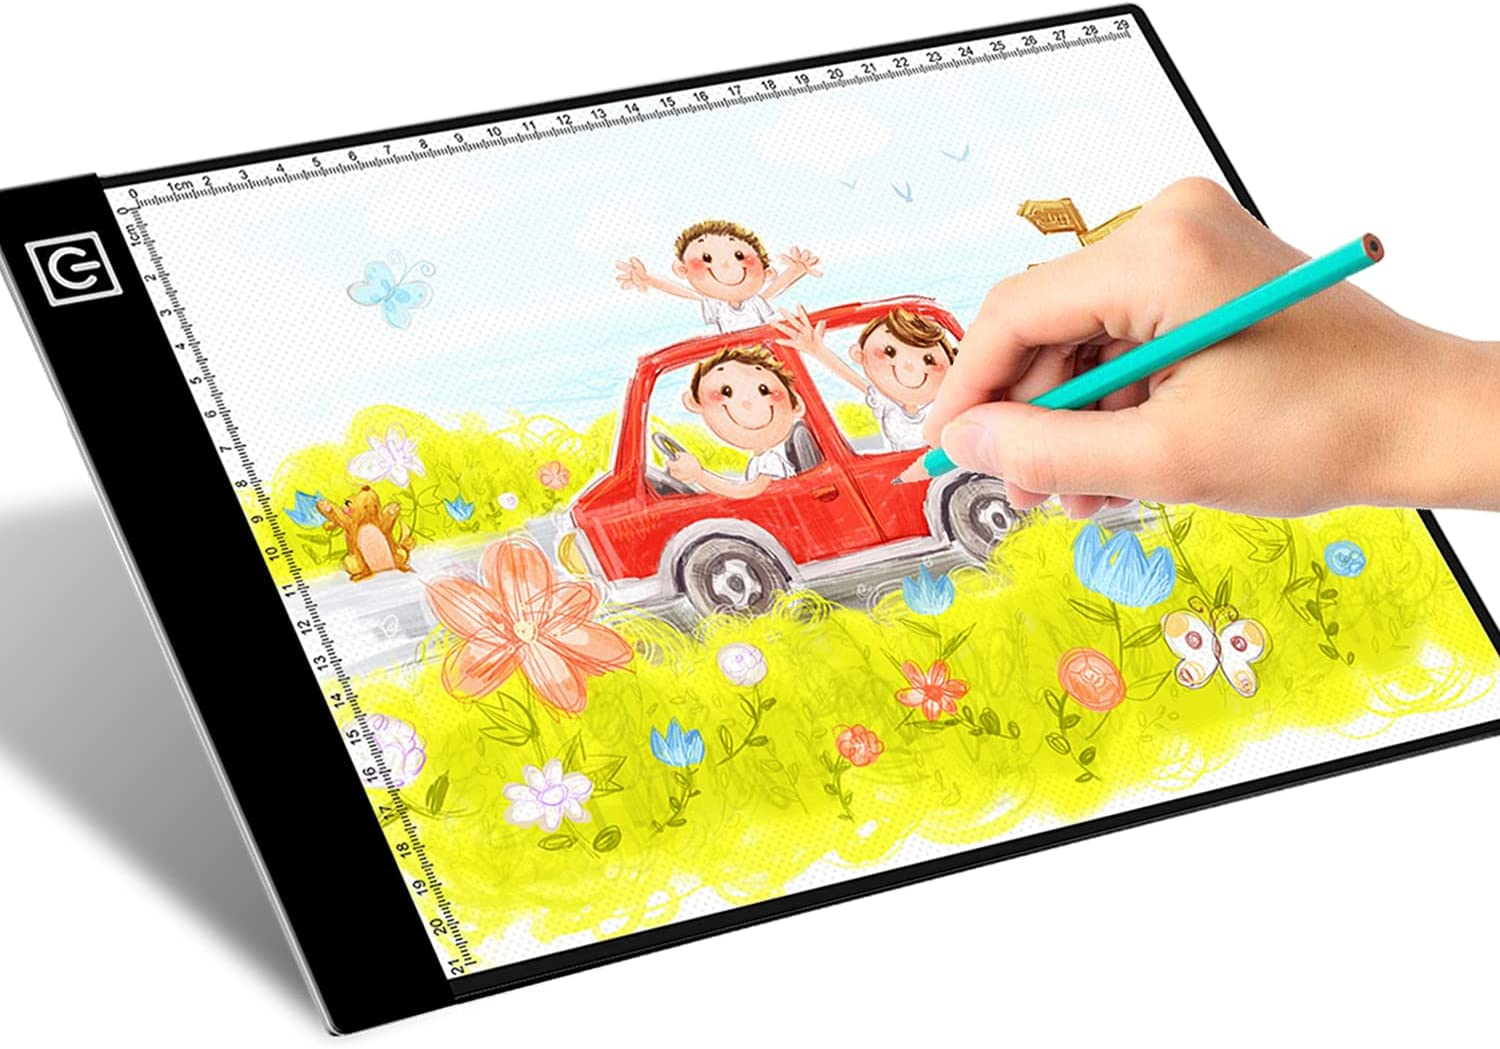 Max 45% OFF A4 Light Box for Tracing with Diamond Painting Memor Sale price Board